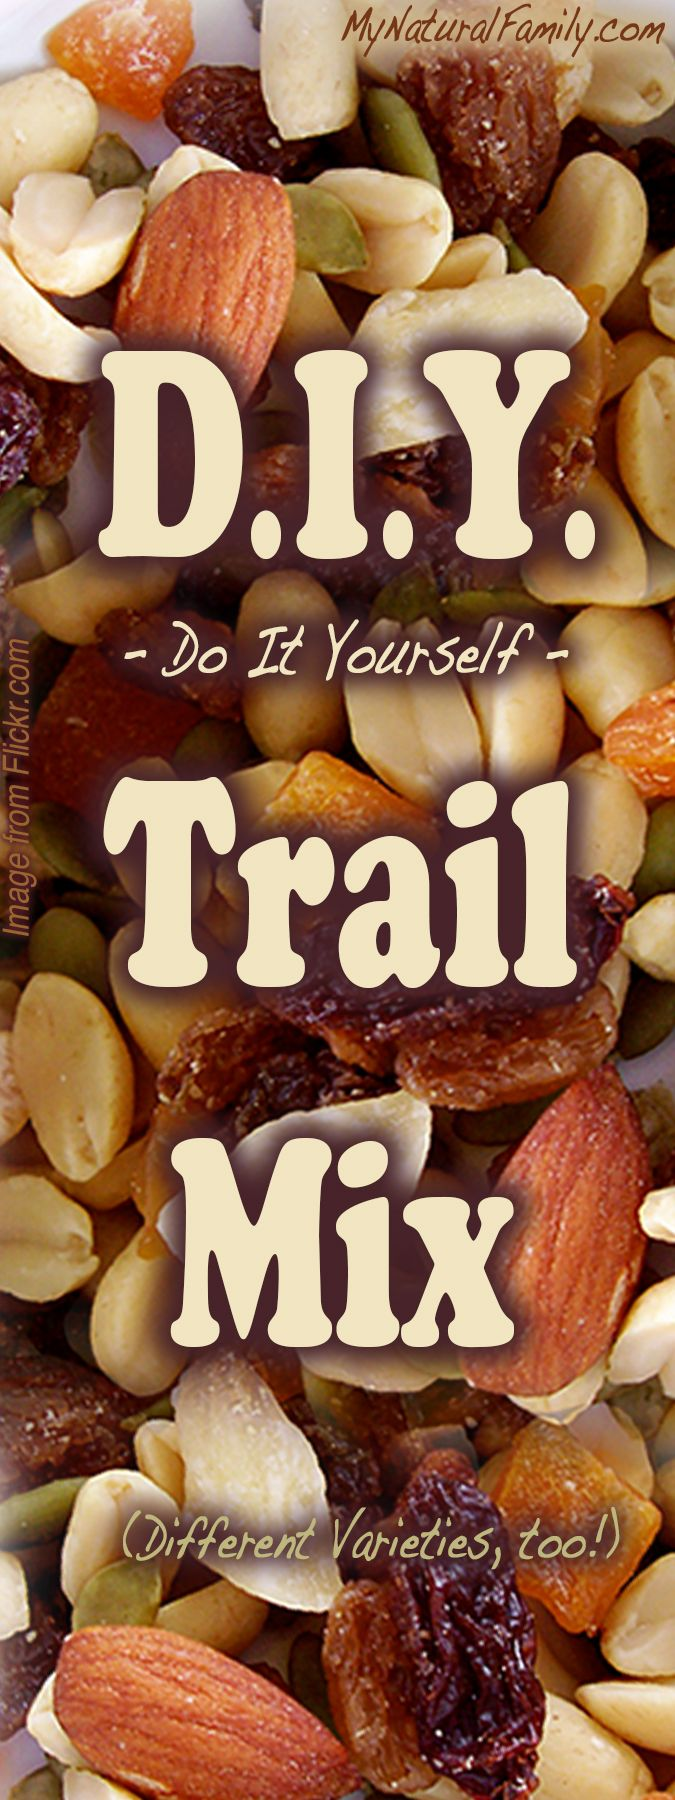 Make Your Own Healthy Trail Mix Recipe - Lots of Fun Variations! - MyNaturalFamily.com  #trailmix #recipe